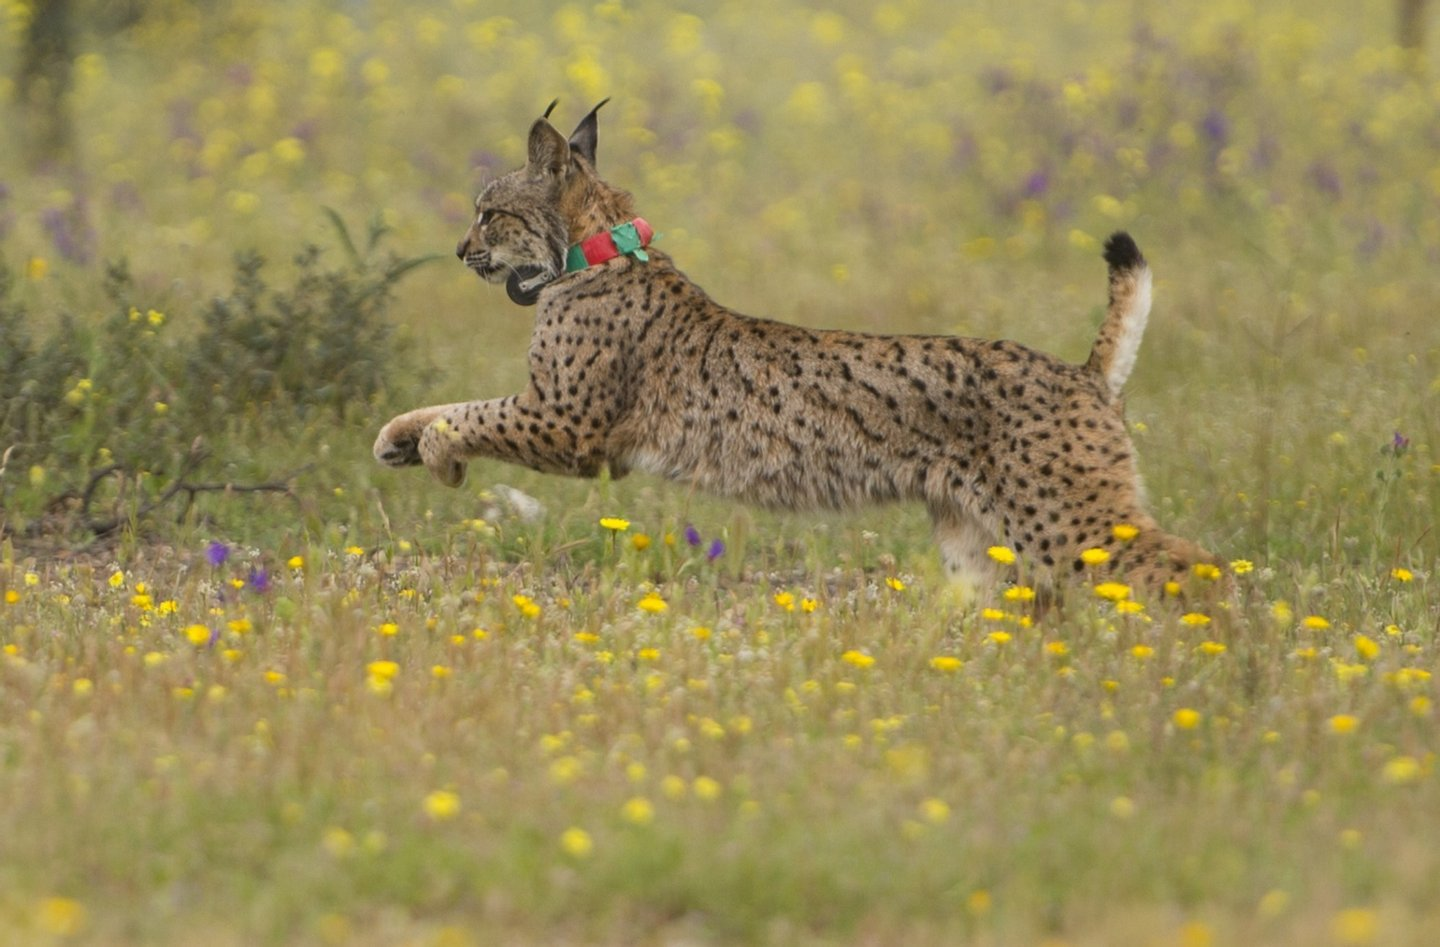 Iberian lynx Lila takes its first steps after being released on a farm near the village of Mazarambros near Toledo on April 24, 2015 part of an initiative to repopulate the endangered species. AFP PHOTO / PIERRE-PHILIPPE MARCOU        (Photo credit should read PIERRE-PHILIPPE MARCOU/AFP/Getty Images)